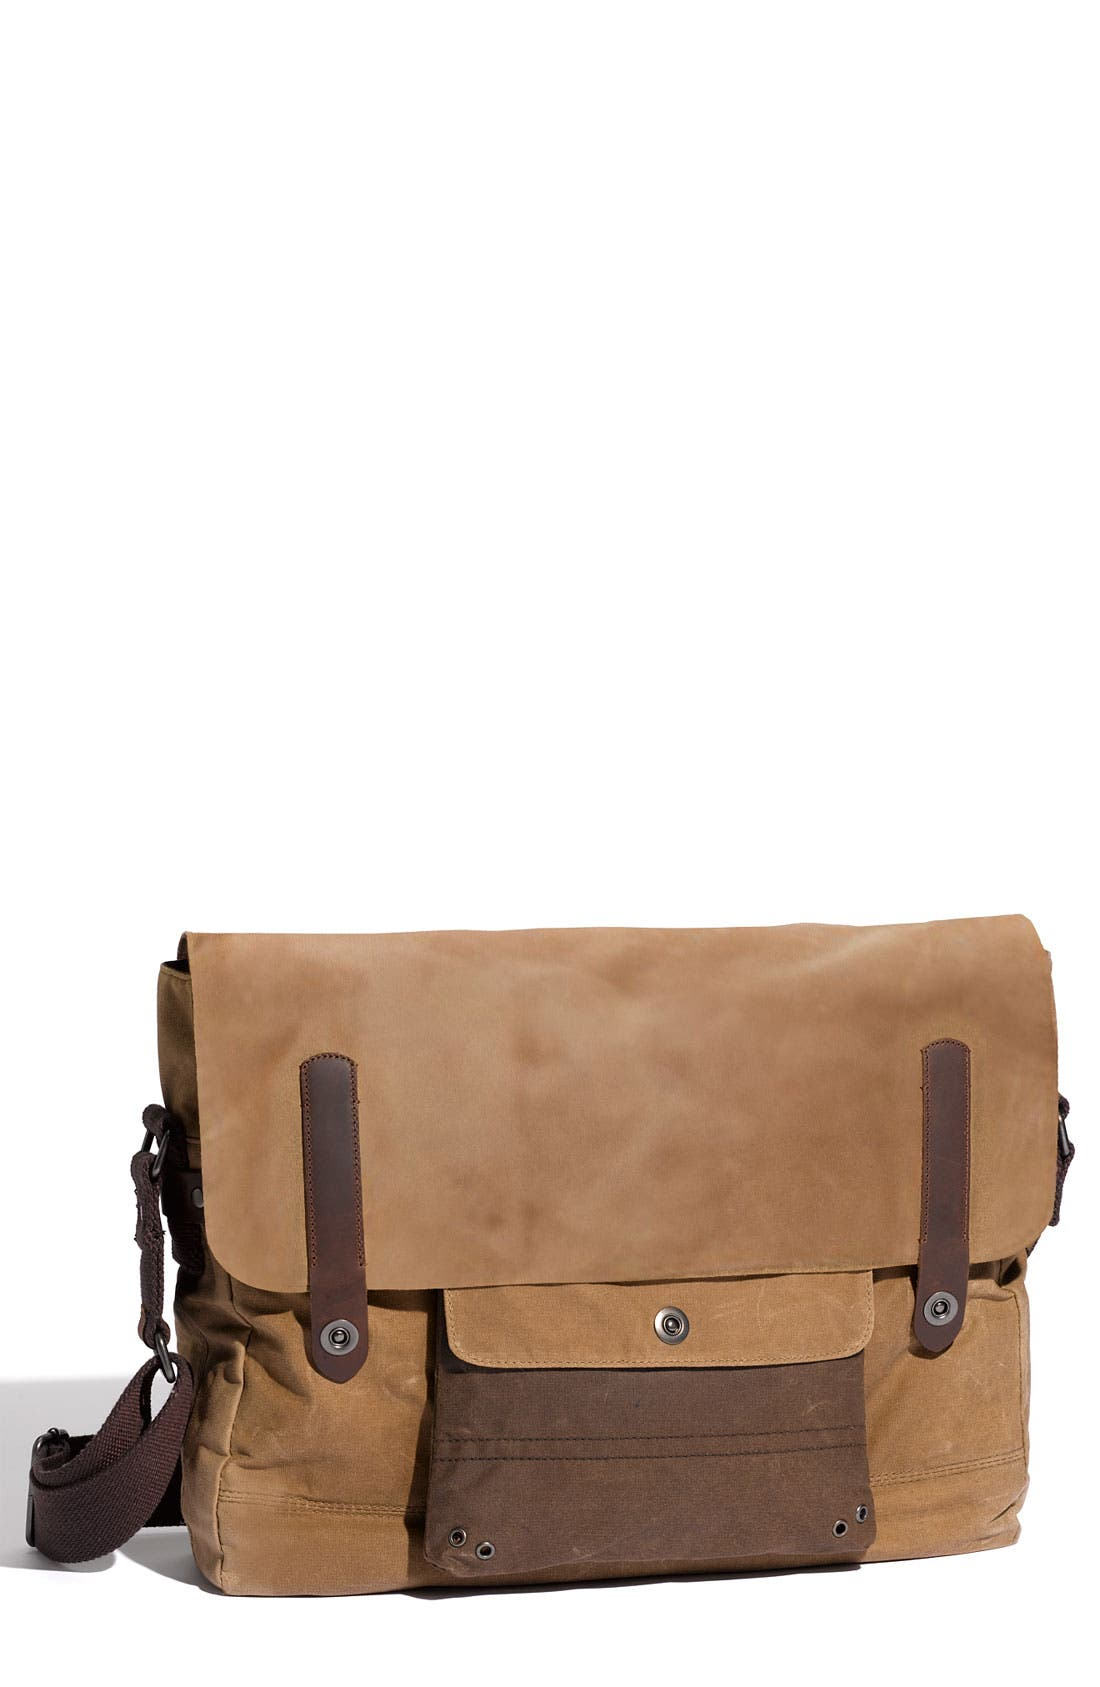 Alternate Image 1 Selected - Levi's® 'River Rock' Messenger Bag